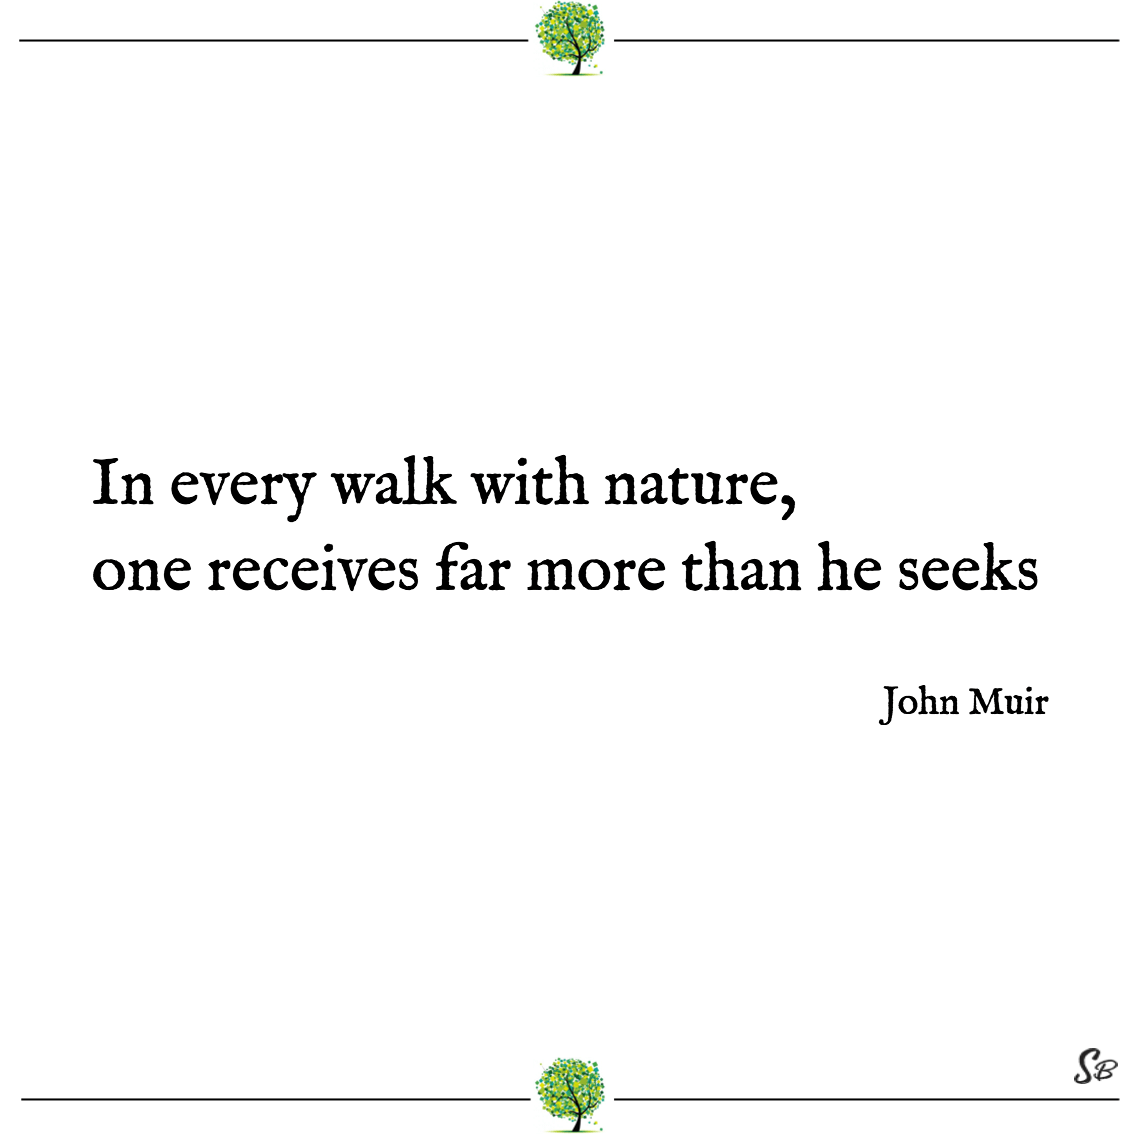 In every walk with nature, one receives far more than he seeks john muir